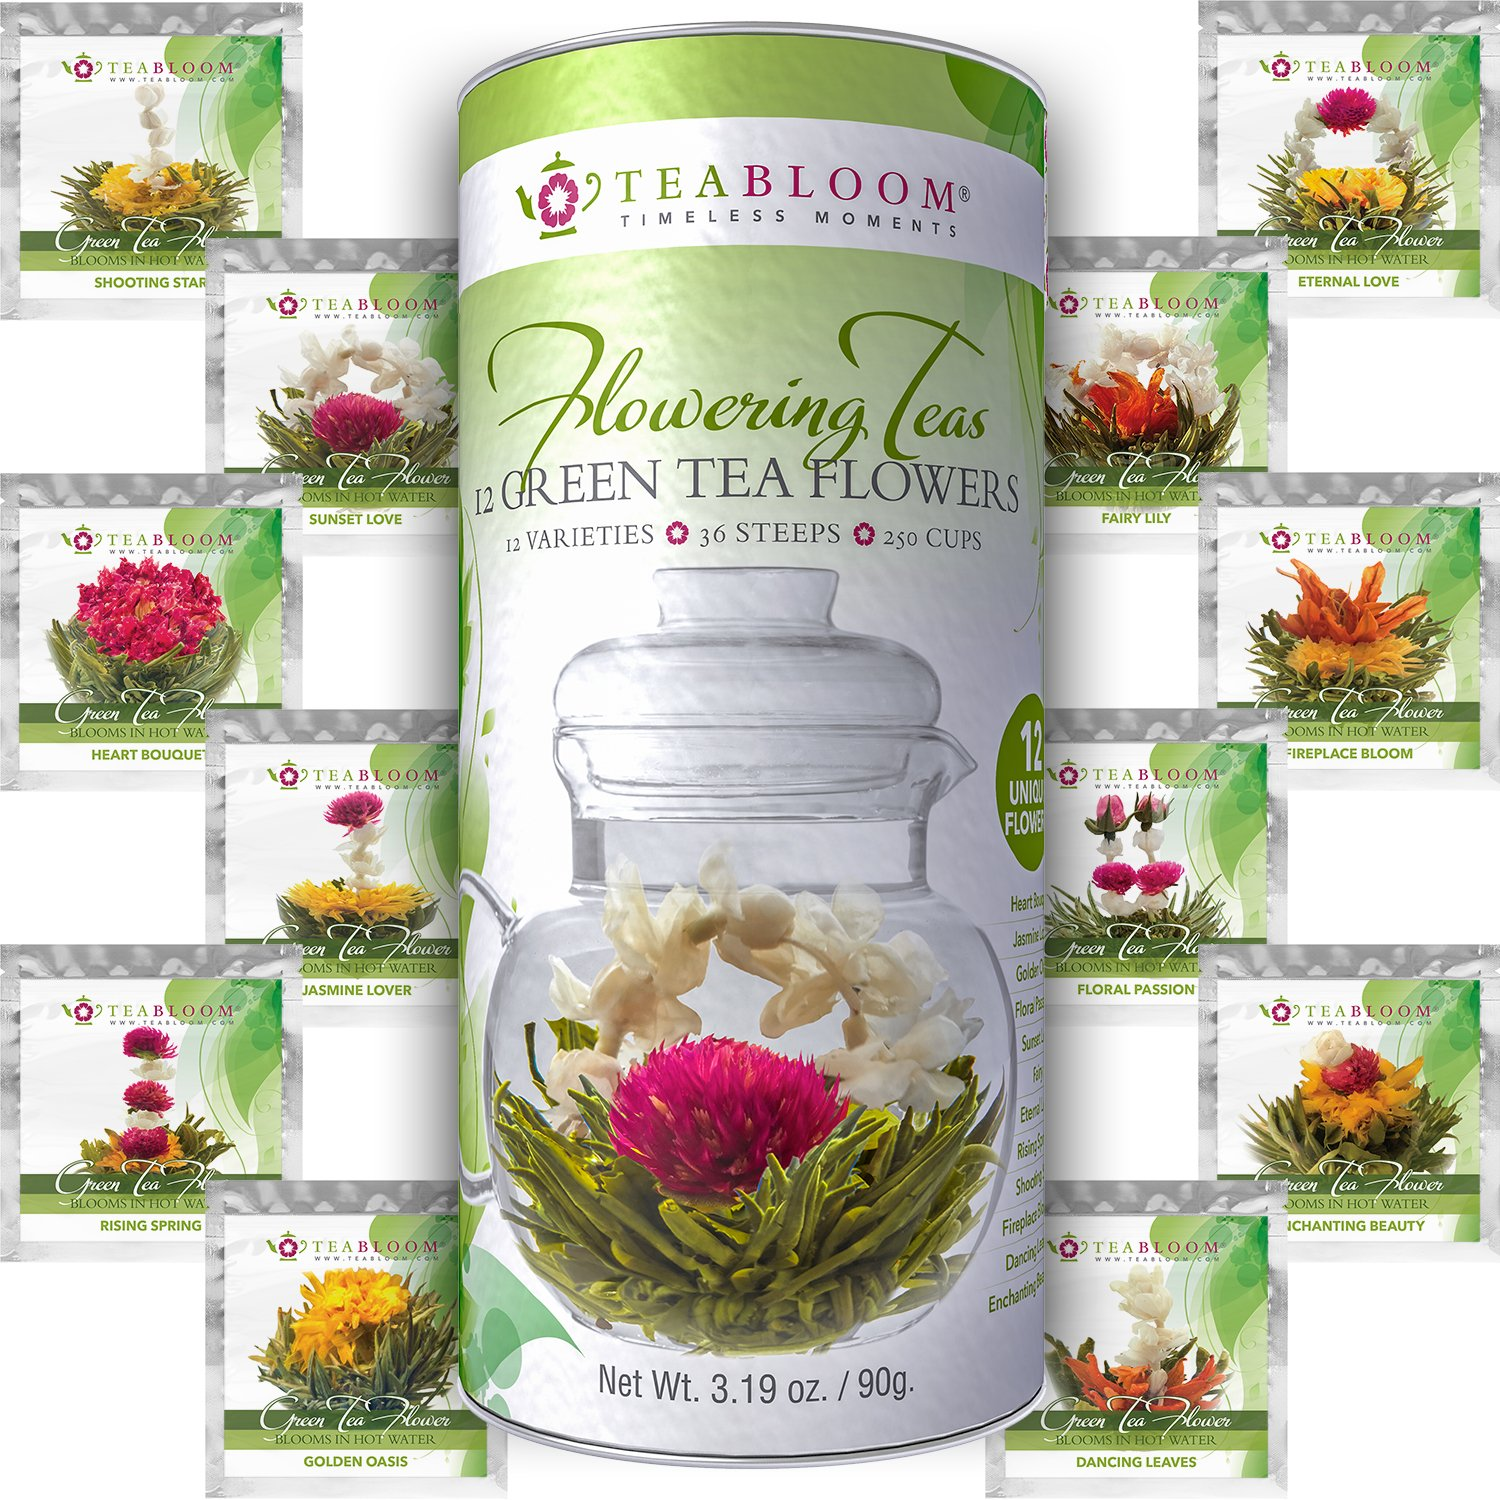 Amazon teabloom flowering tea 12 unique varieties of amazon teabloom flowering tea 12 unique varieties of blooming tea flowers hand tied natural green tea leaves edible flowers 12 pack gift izmirmasajfo